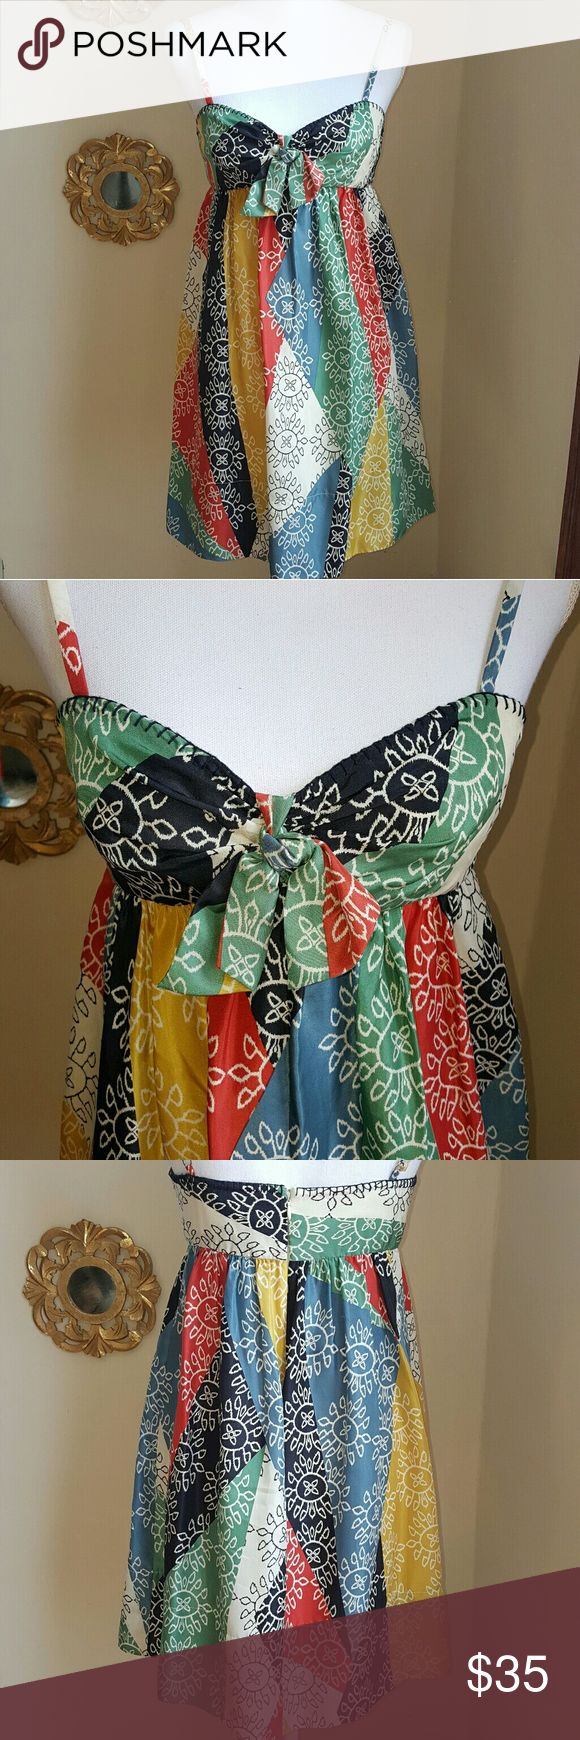 ⬇️ BCBGMaxAzria Colorful Print Silk Dress Beautiful colorful silk dress from BCBG Max Azria that's perfect for Spring & Summer. Pretty stich details along the top and a tie bow in the front. No defects or signs of wear. BCBGMaxAzria Dresses